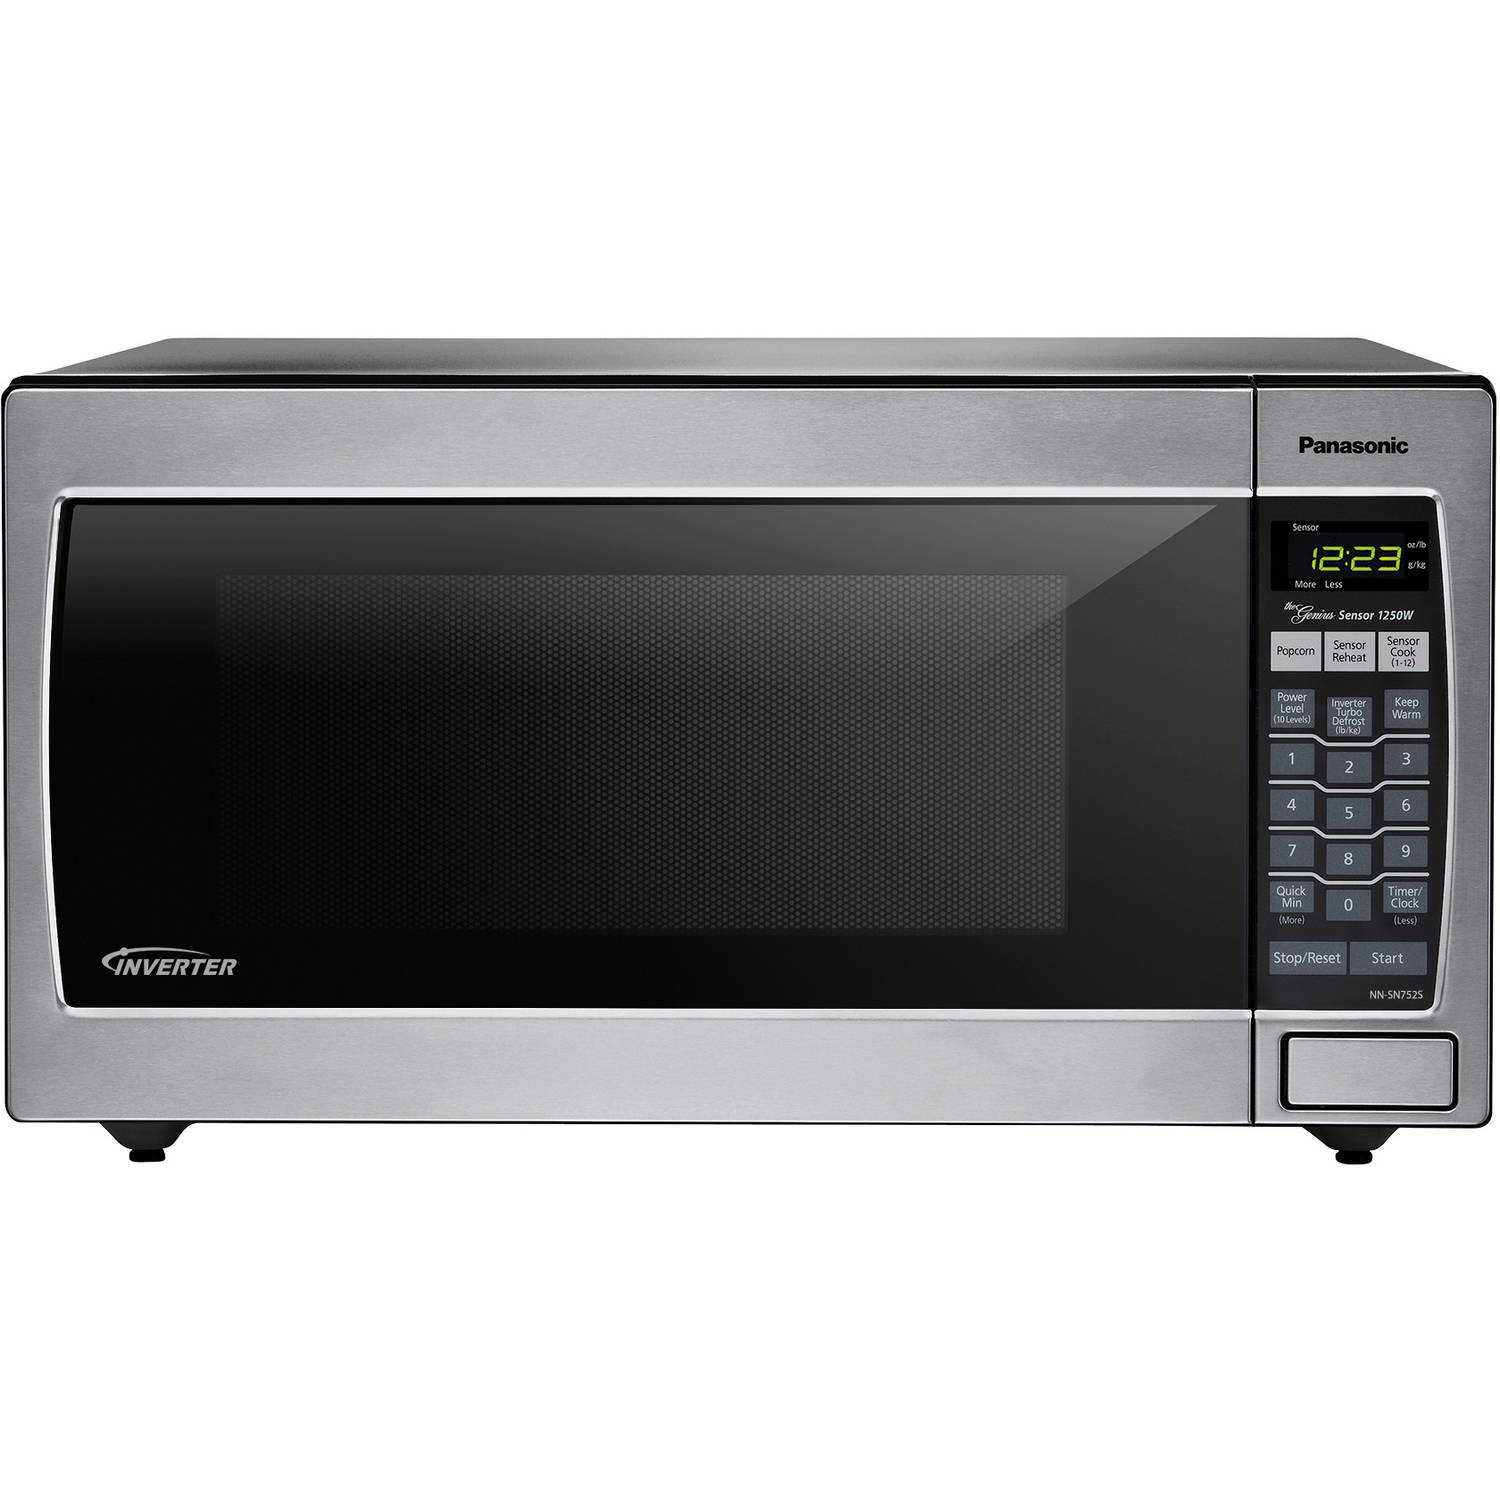 Panasonic Nn Sn752s Stainless 1250w 1 6 Cu Ft ᅡᅠ Countertop Built In Microwave With Inverter Technology